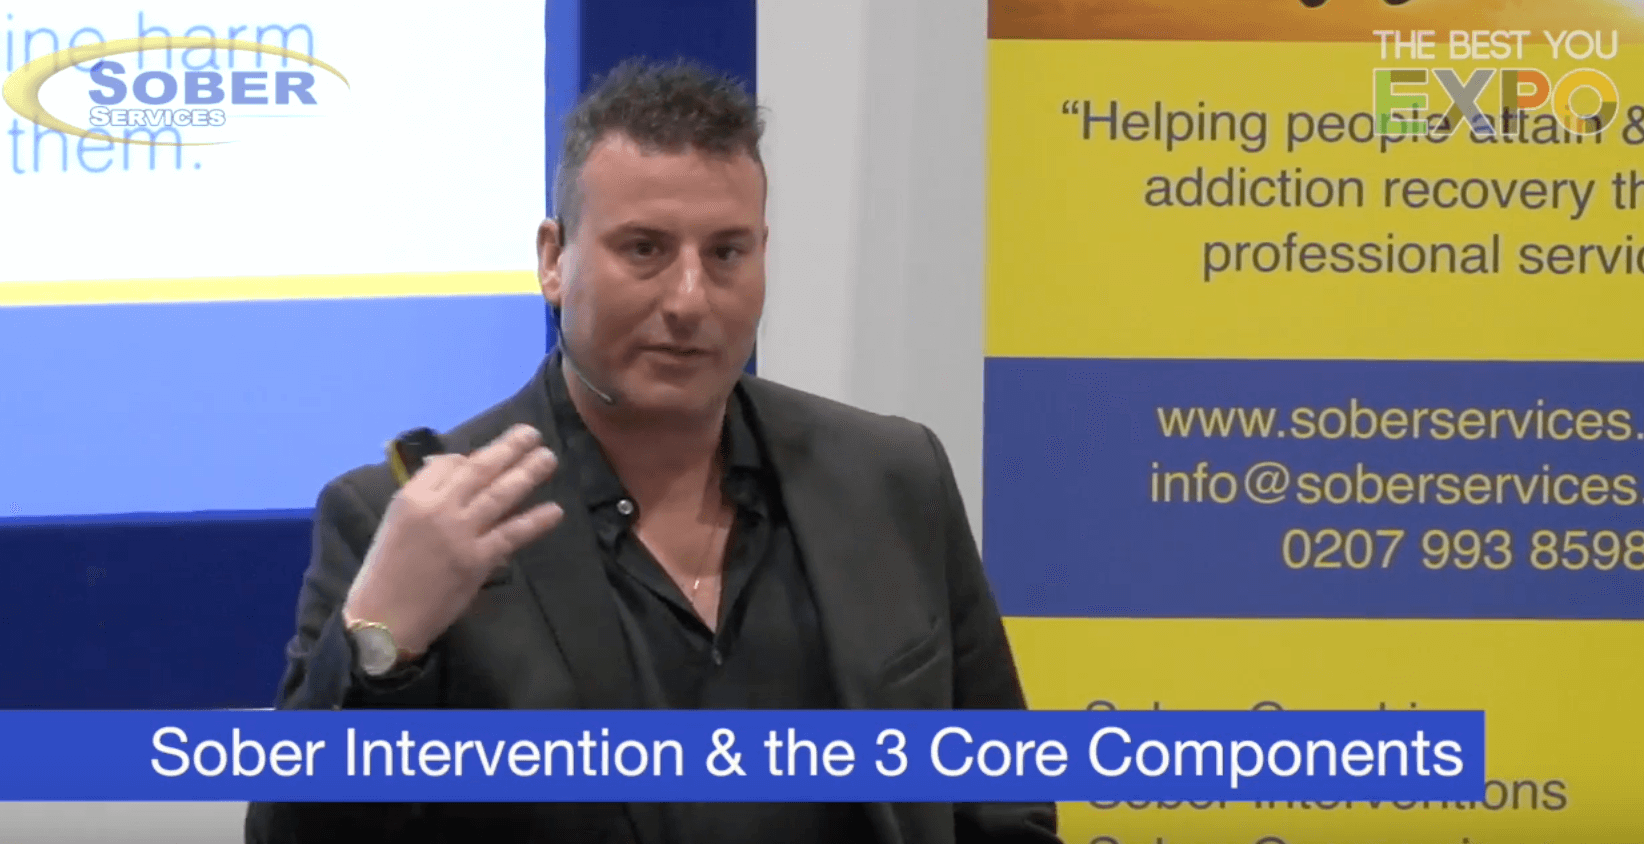 Sober Intervention & the 3 Core Components